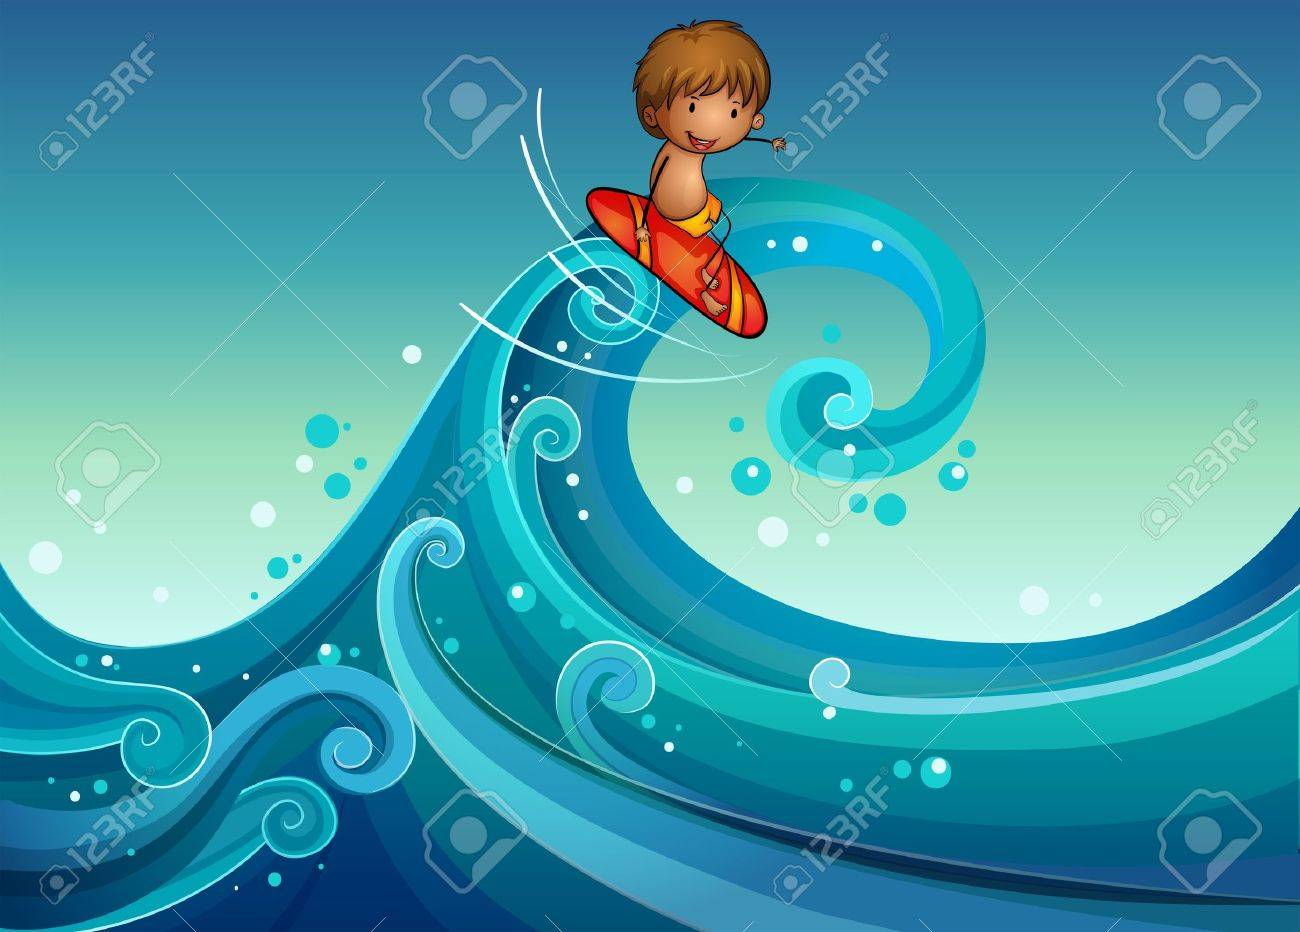 Illustration of a young boy surfing Stock Vector - 19959135